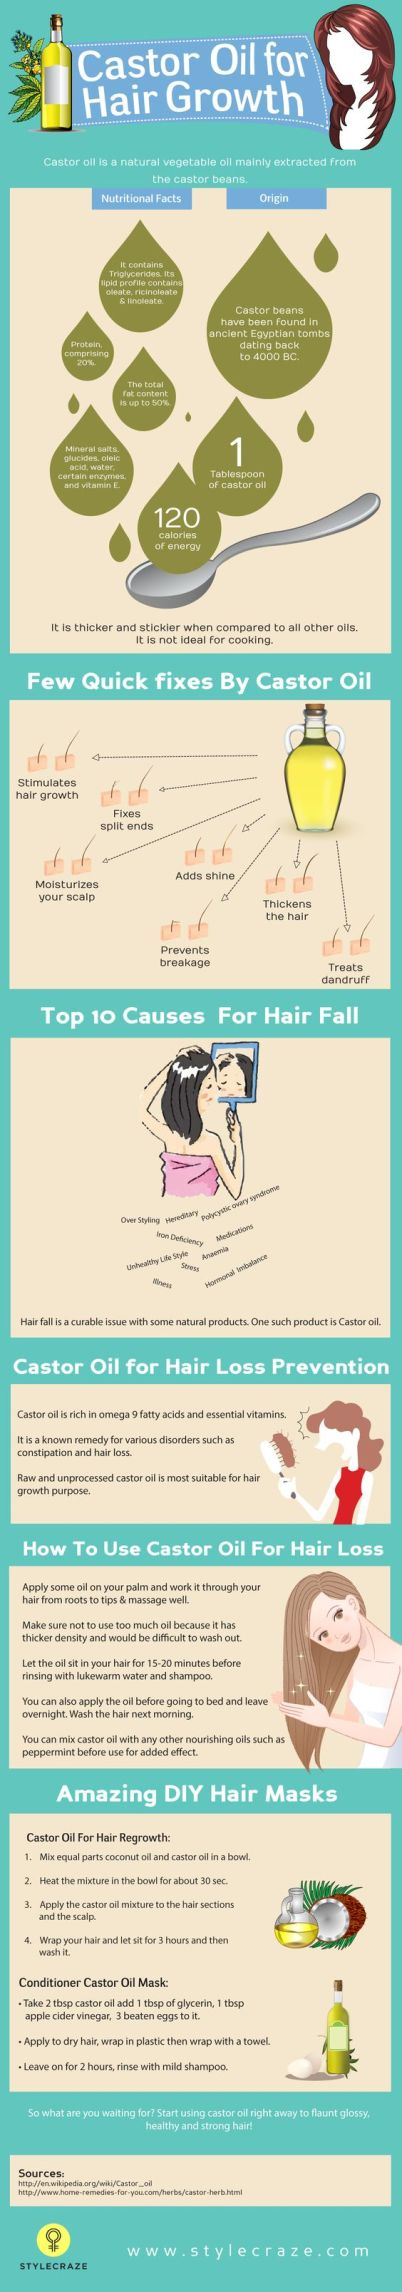 Using castor oil is a great way to grow your hair longer!